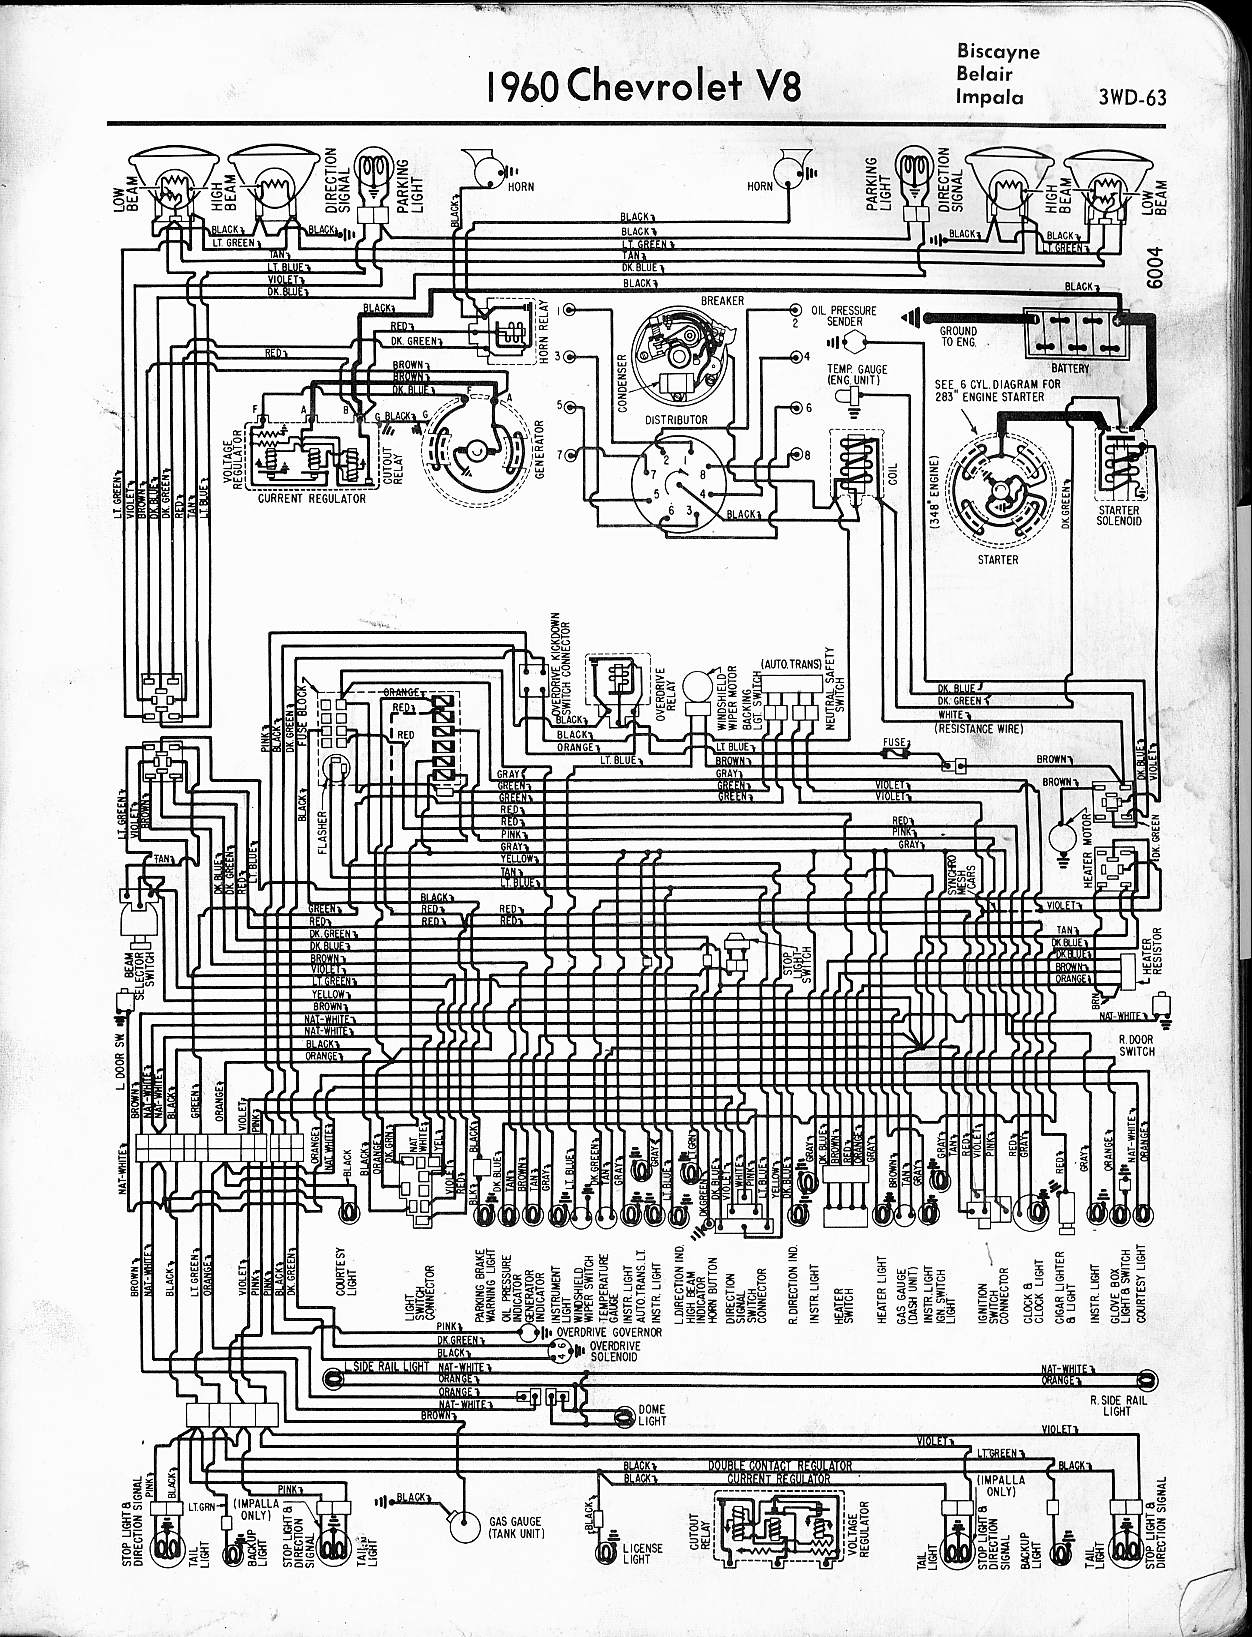 57 65 chevy wiring diagrams rh oldcarmanualproject com 1960 impala ignition switch wiring diagram 1960 chevy impala wiper motor wiring diagram